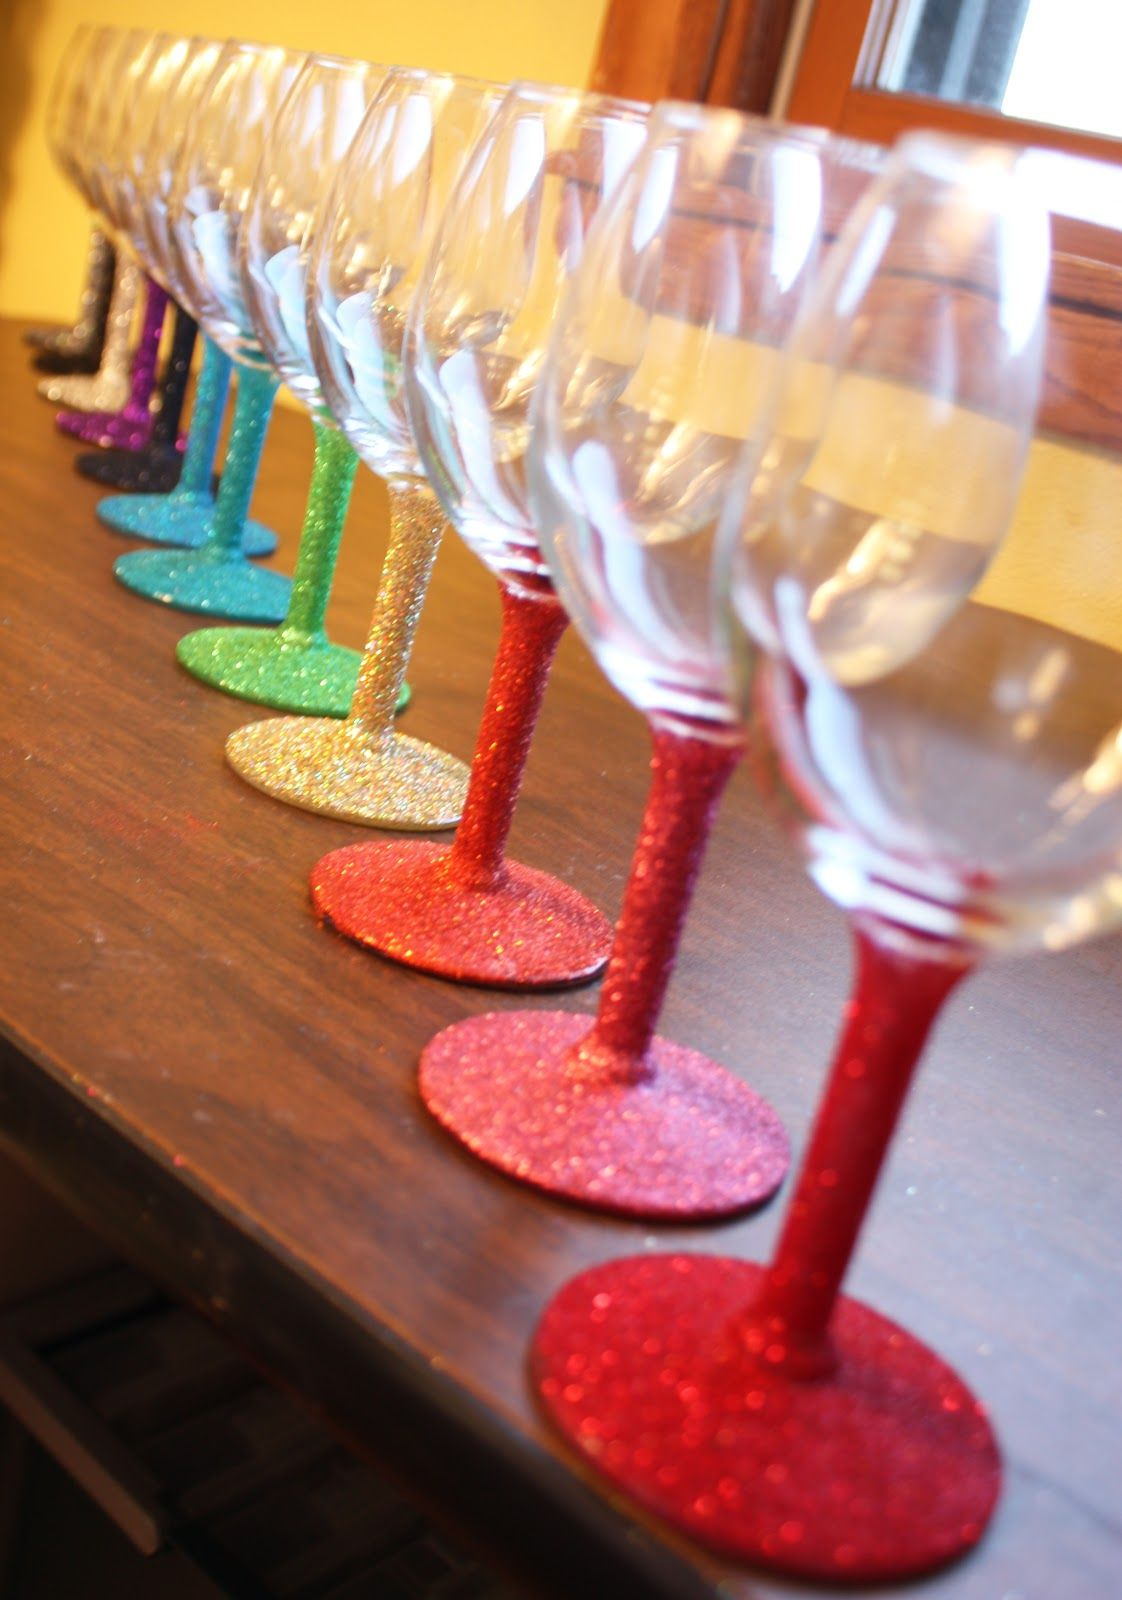 Artglitterblog Celebrate In Style With Art Glitter Glitter Crafts Glitter Diy Diy Wine Glasses